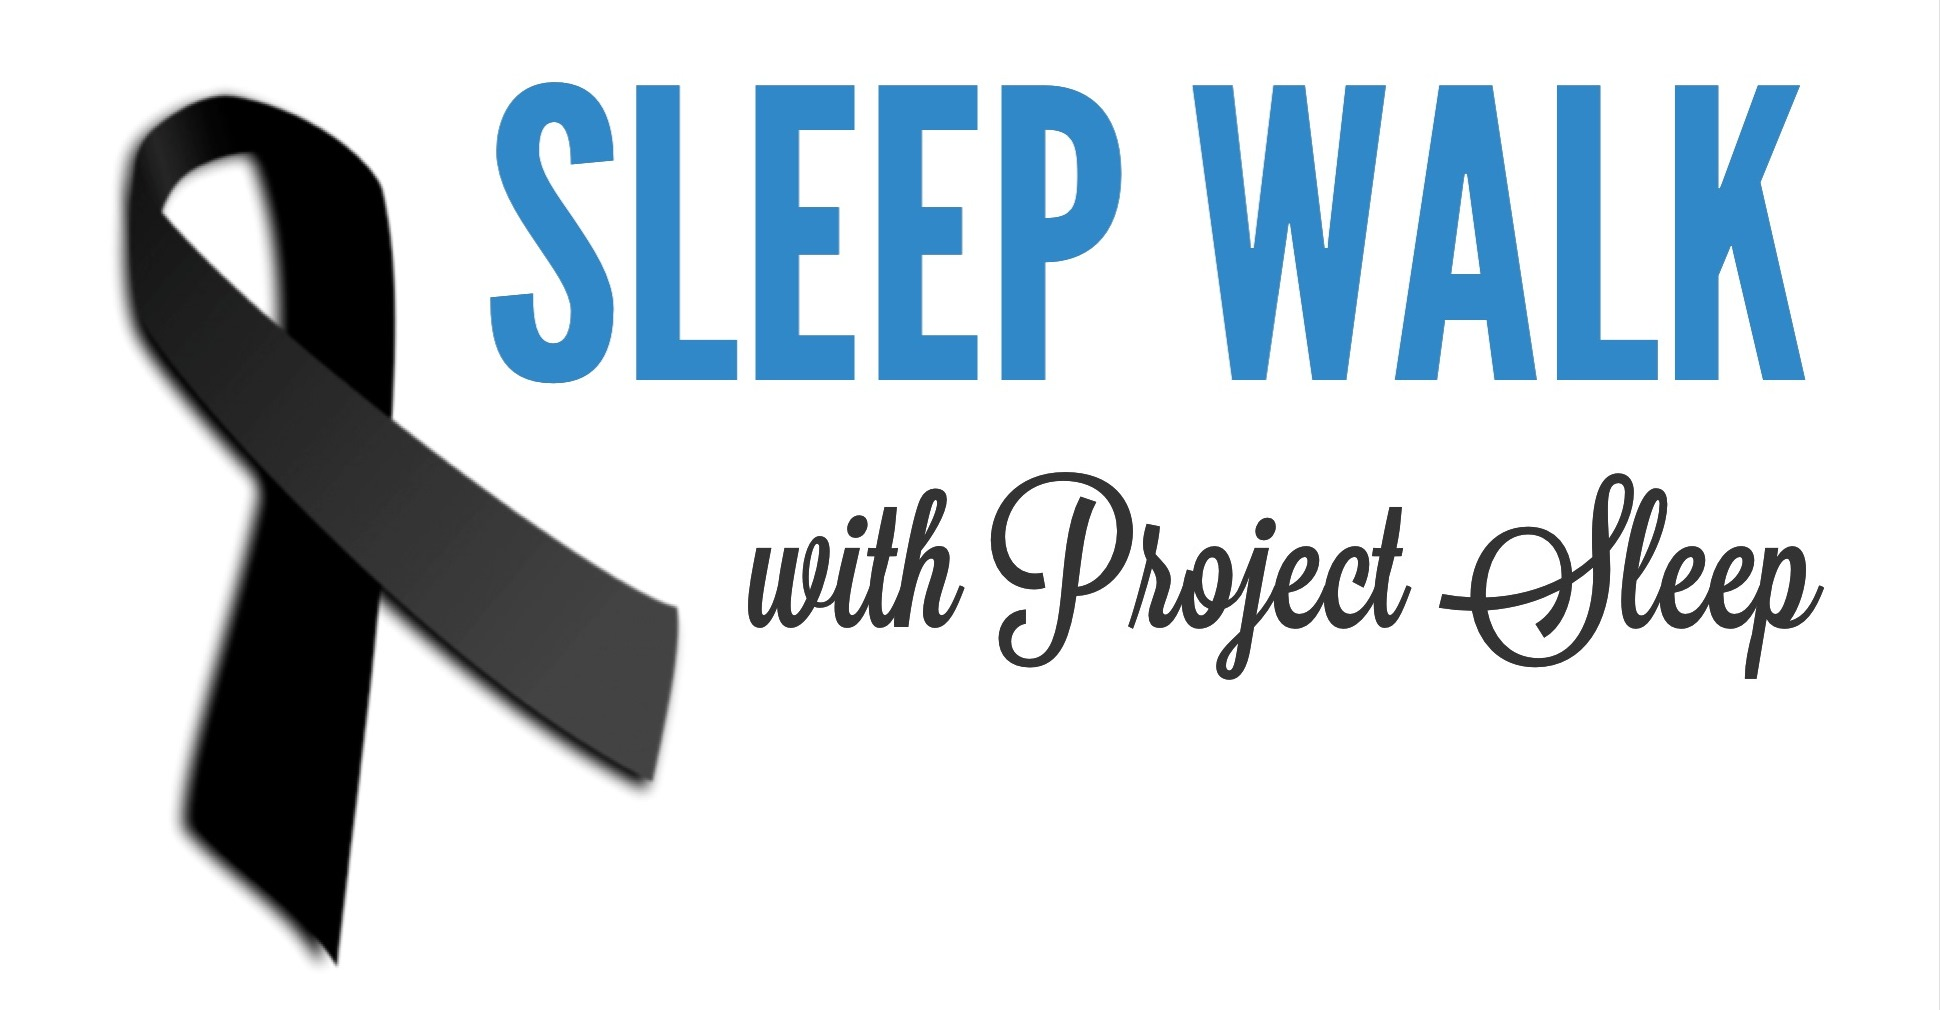 ... Alabama, Texas and Hawaii Celebrate National Sleep Awareness Week 2014